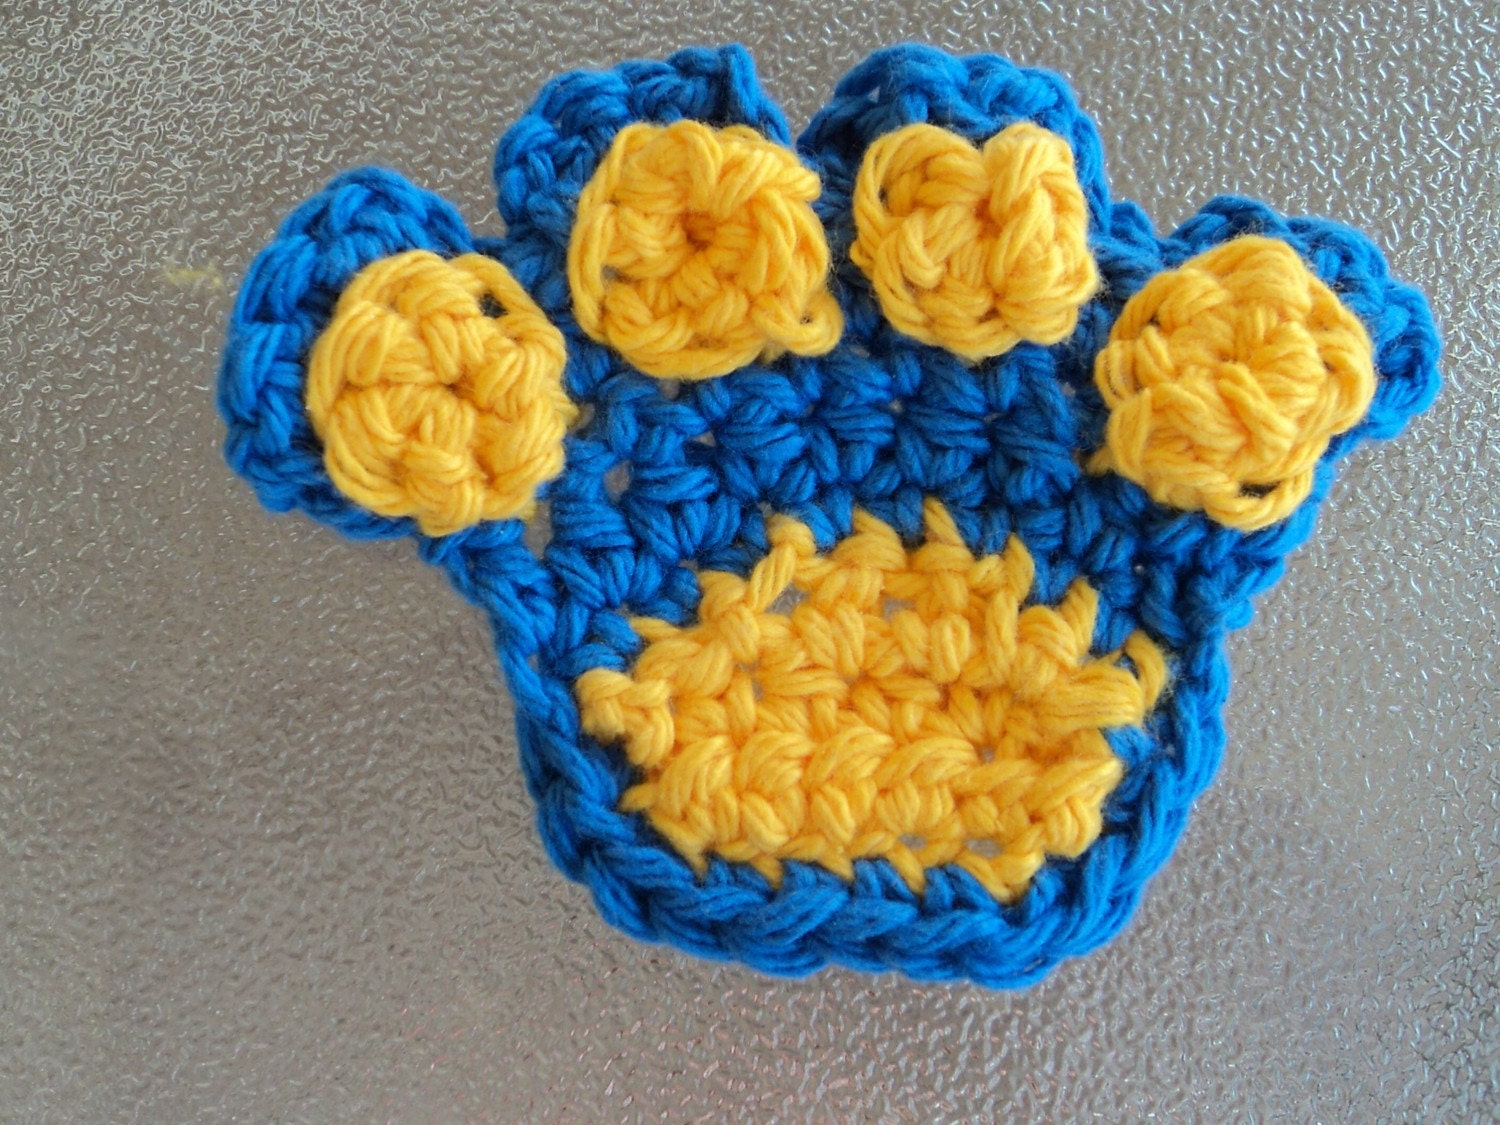 Free Crochet Pattern For Paw Print : CROCHET PATTERN Paw Print Applique by Tanyastangles on Etsy